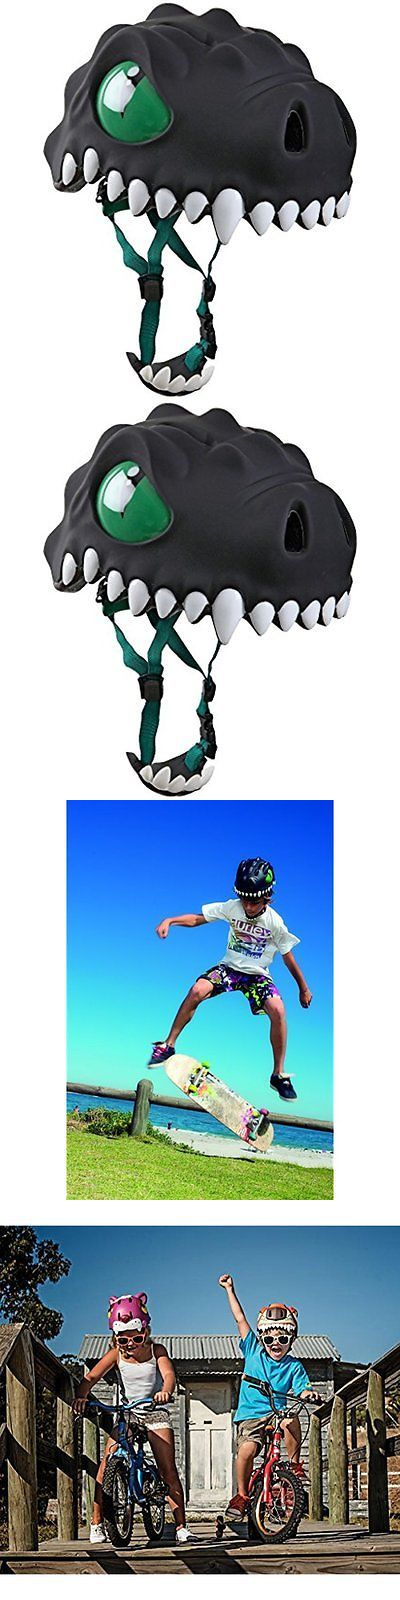 Bells and Horns 123474: Crazy Safety Prem Black Kids Helmets Dragon Helmet -> BUY IT NOW ONLY: $62.78 on eBay!